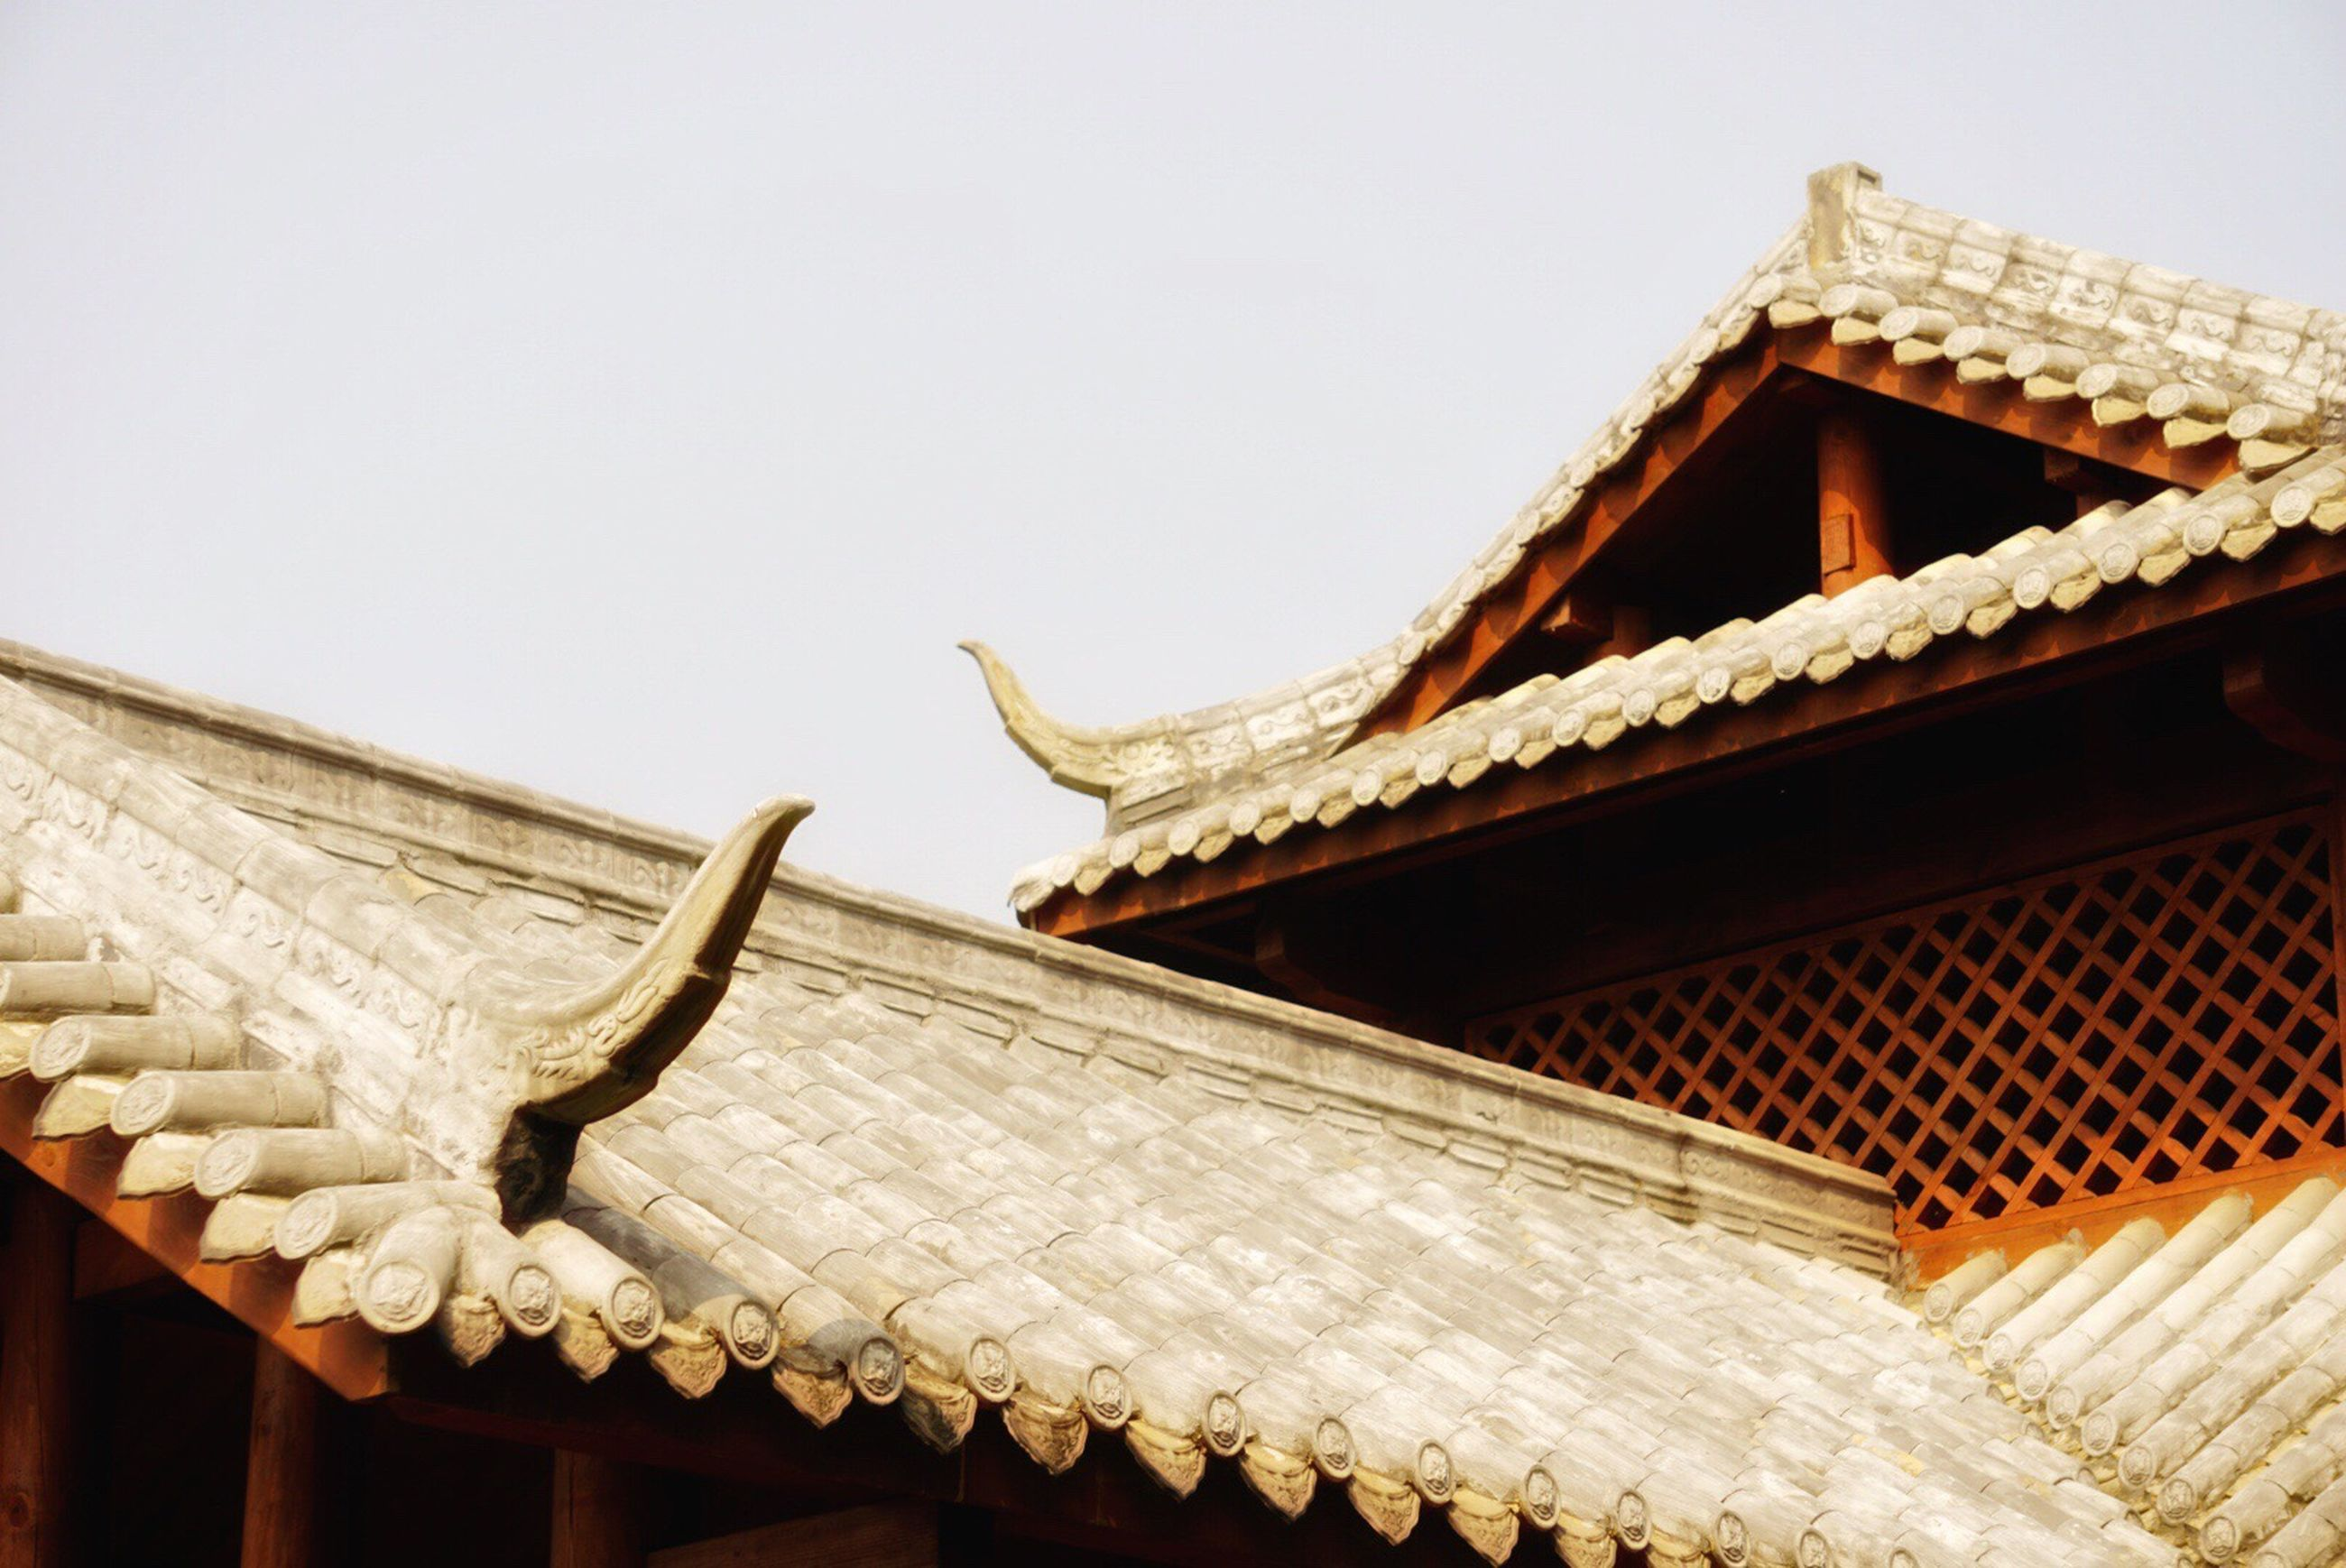 architecture, built structure, building exterior, low angle view, roof, no people, day, outdoors, traditional building, sky